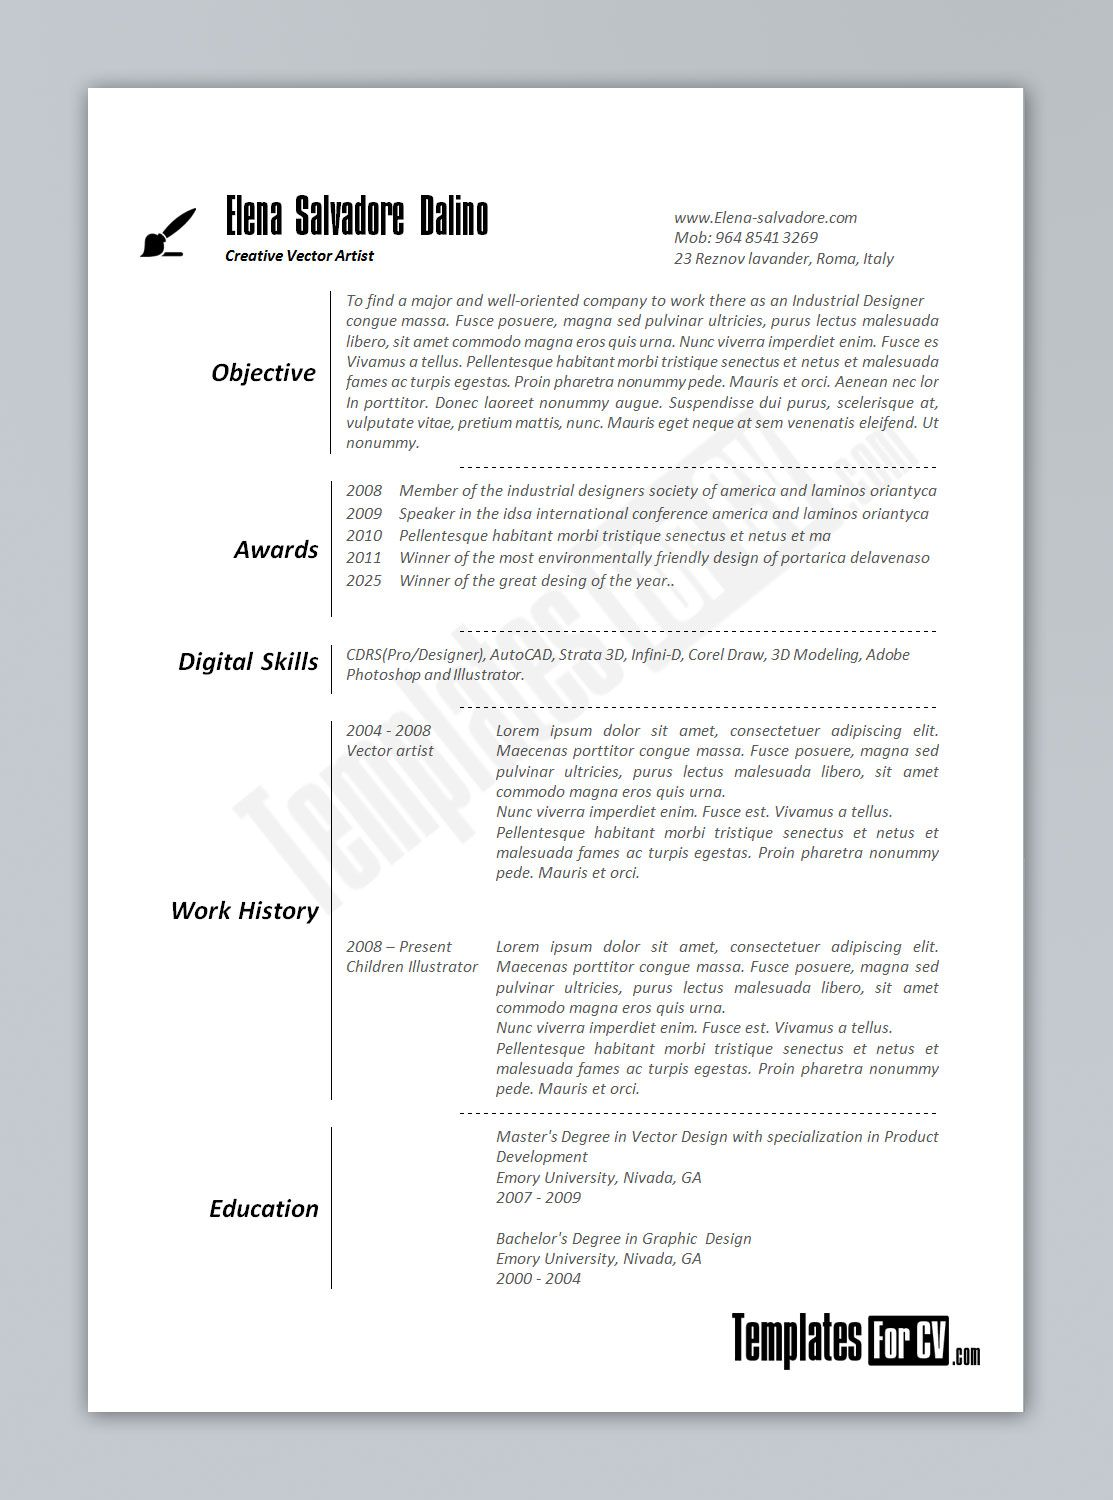 Artist Resume Template Captivating Artist Cv Template #artist #cv #template  Cv Templates